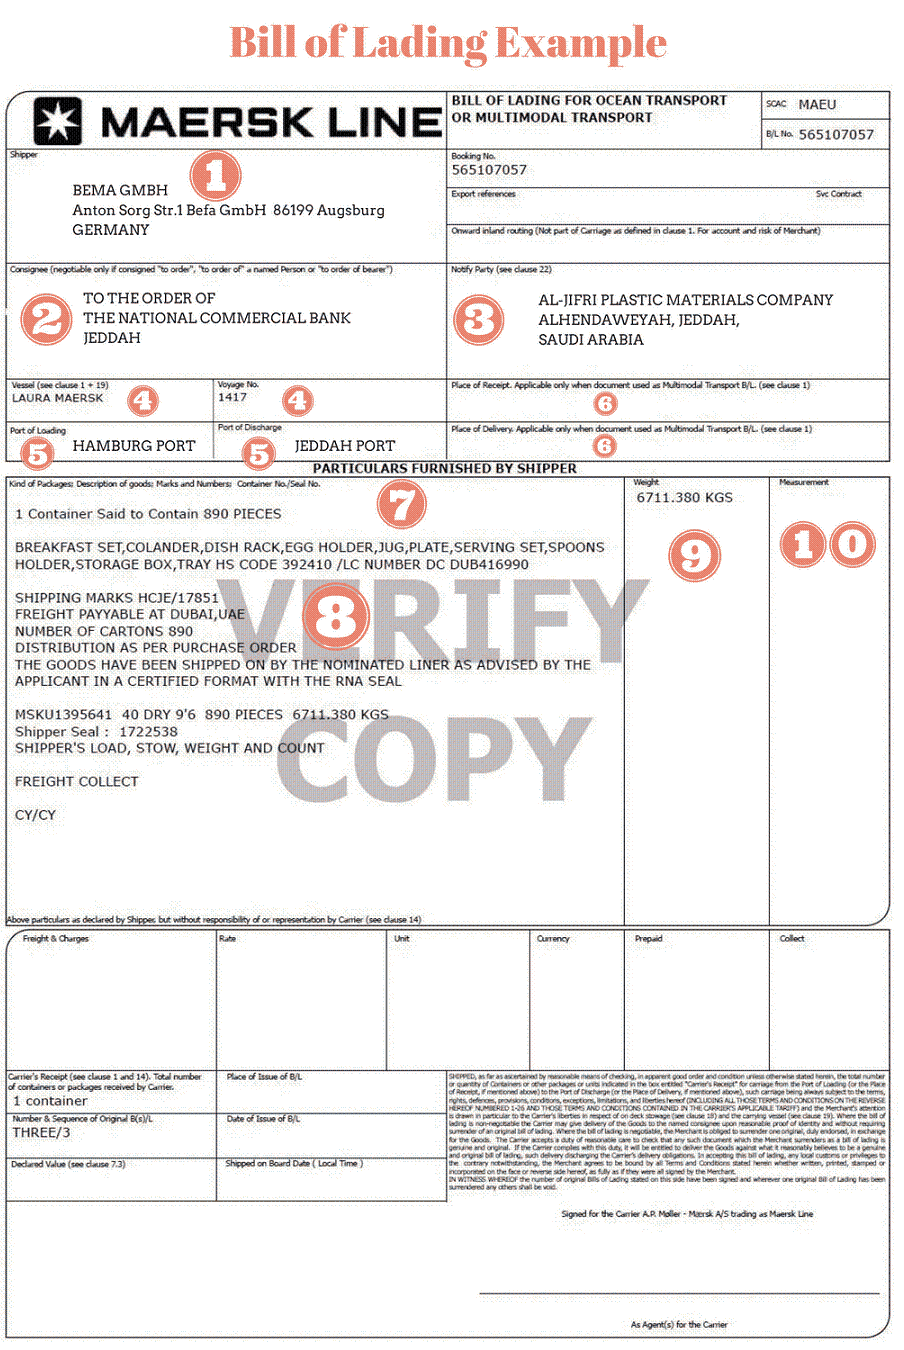 How to Complete a Bill of Lading and a Shipping Instructions